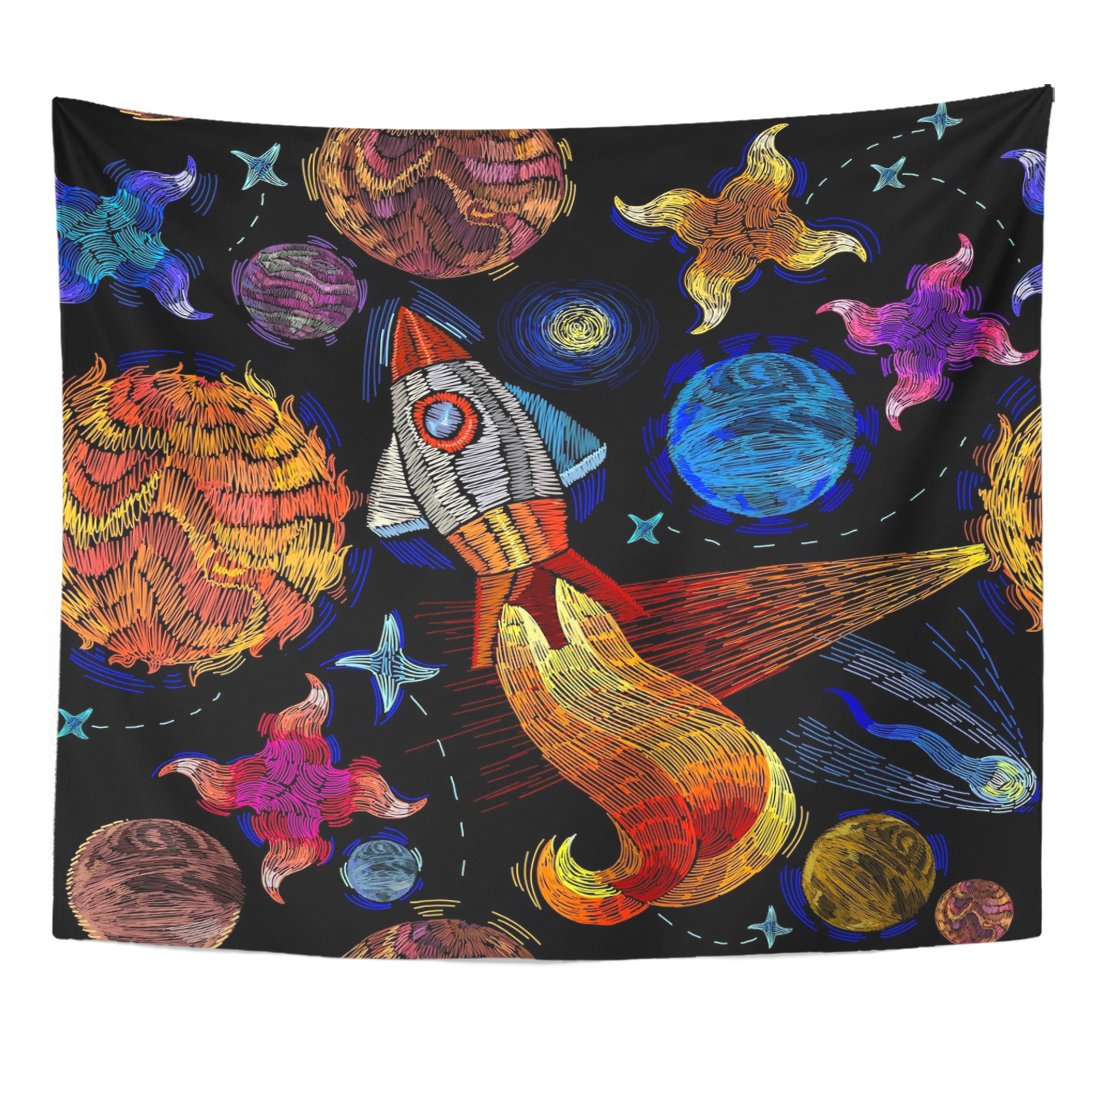 TOMPOP Tapestry Colorful Universe Rocket Planet Solar System Galaxy Space Home Decor Wall Hanging for Living Room Bedroom Dorm 50x60 Inches